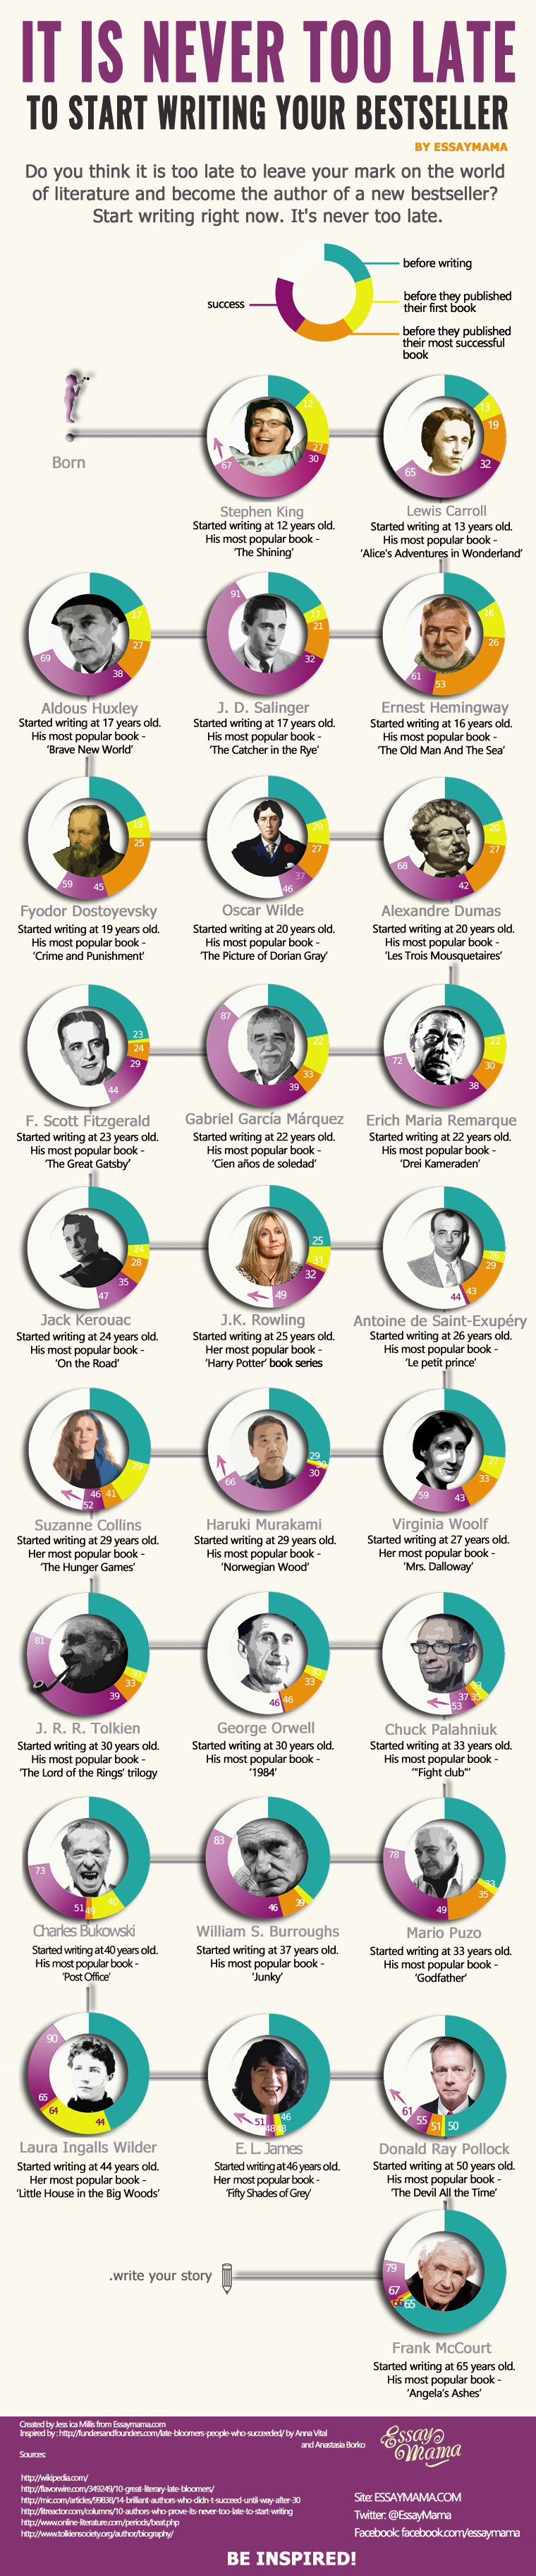 Writer age infographic